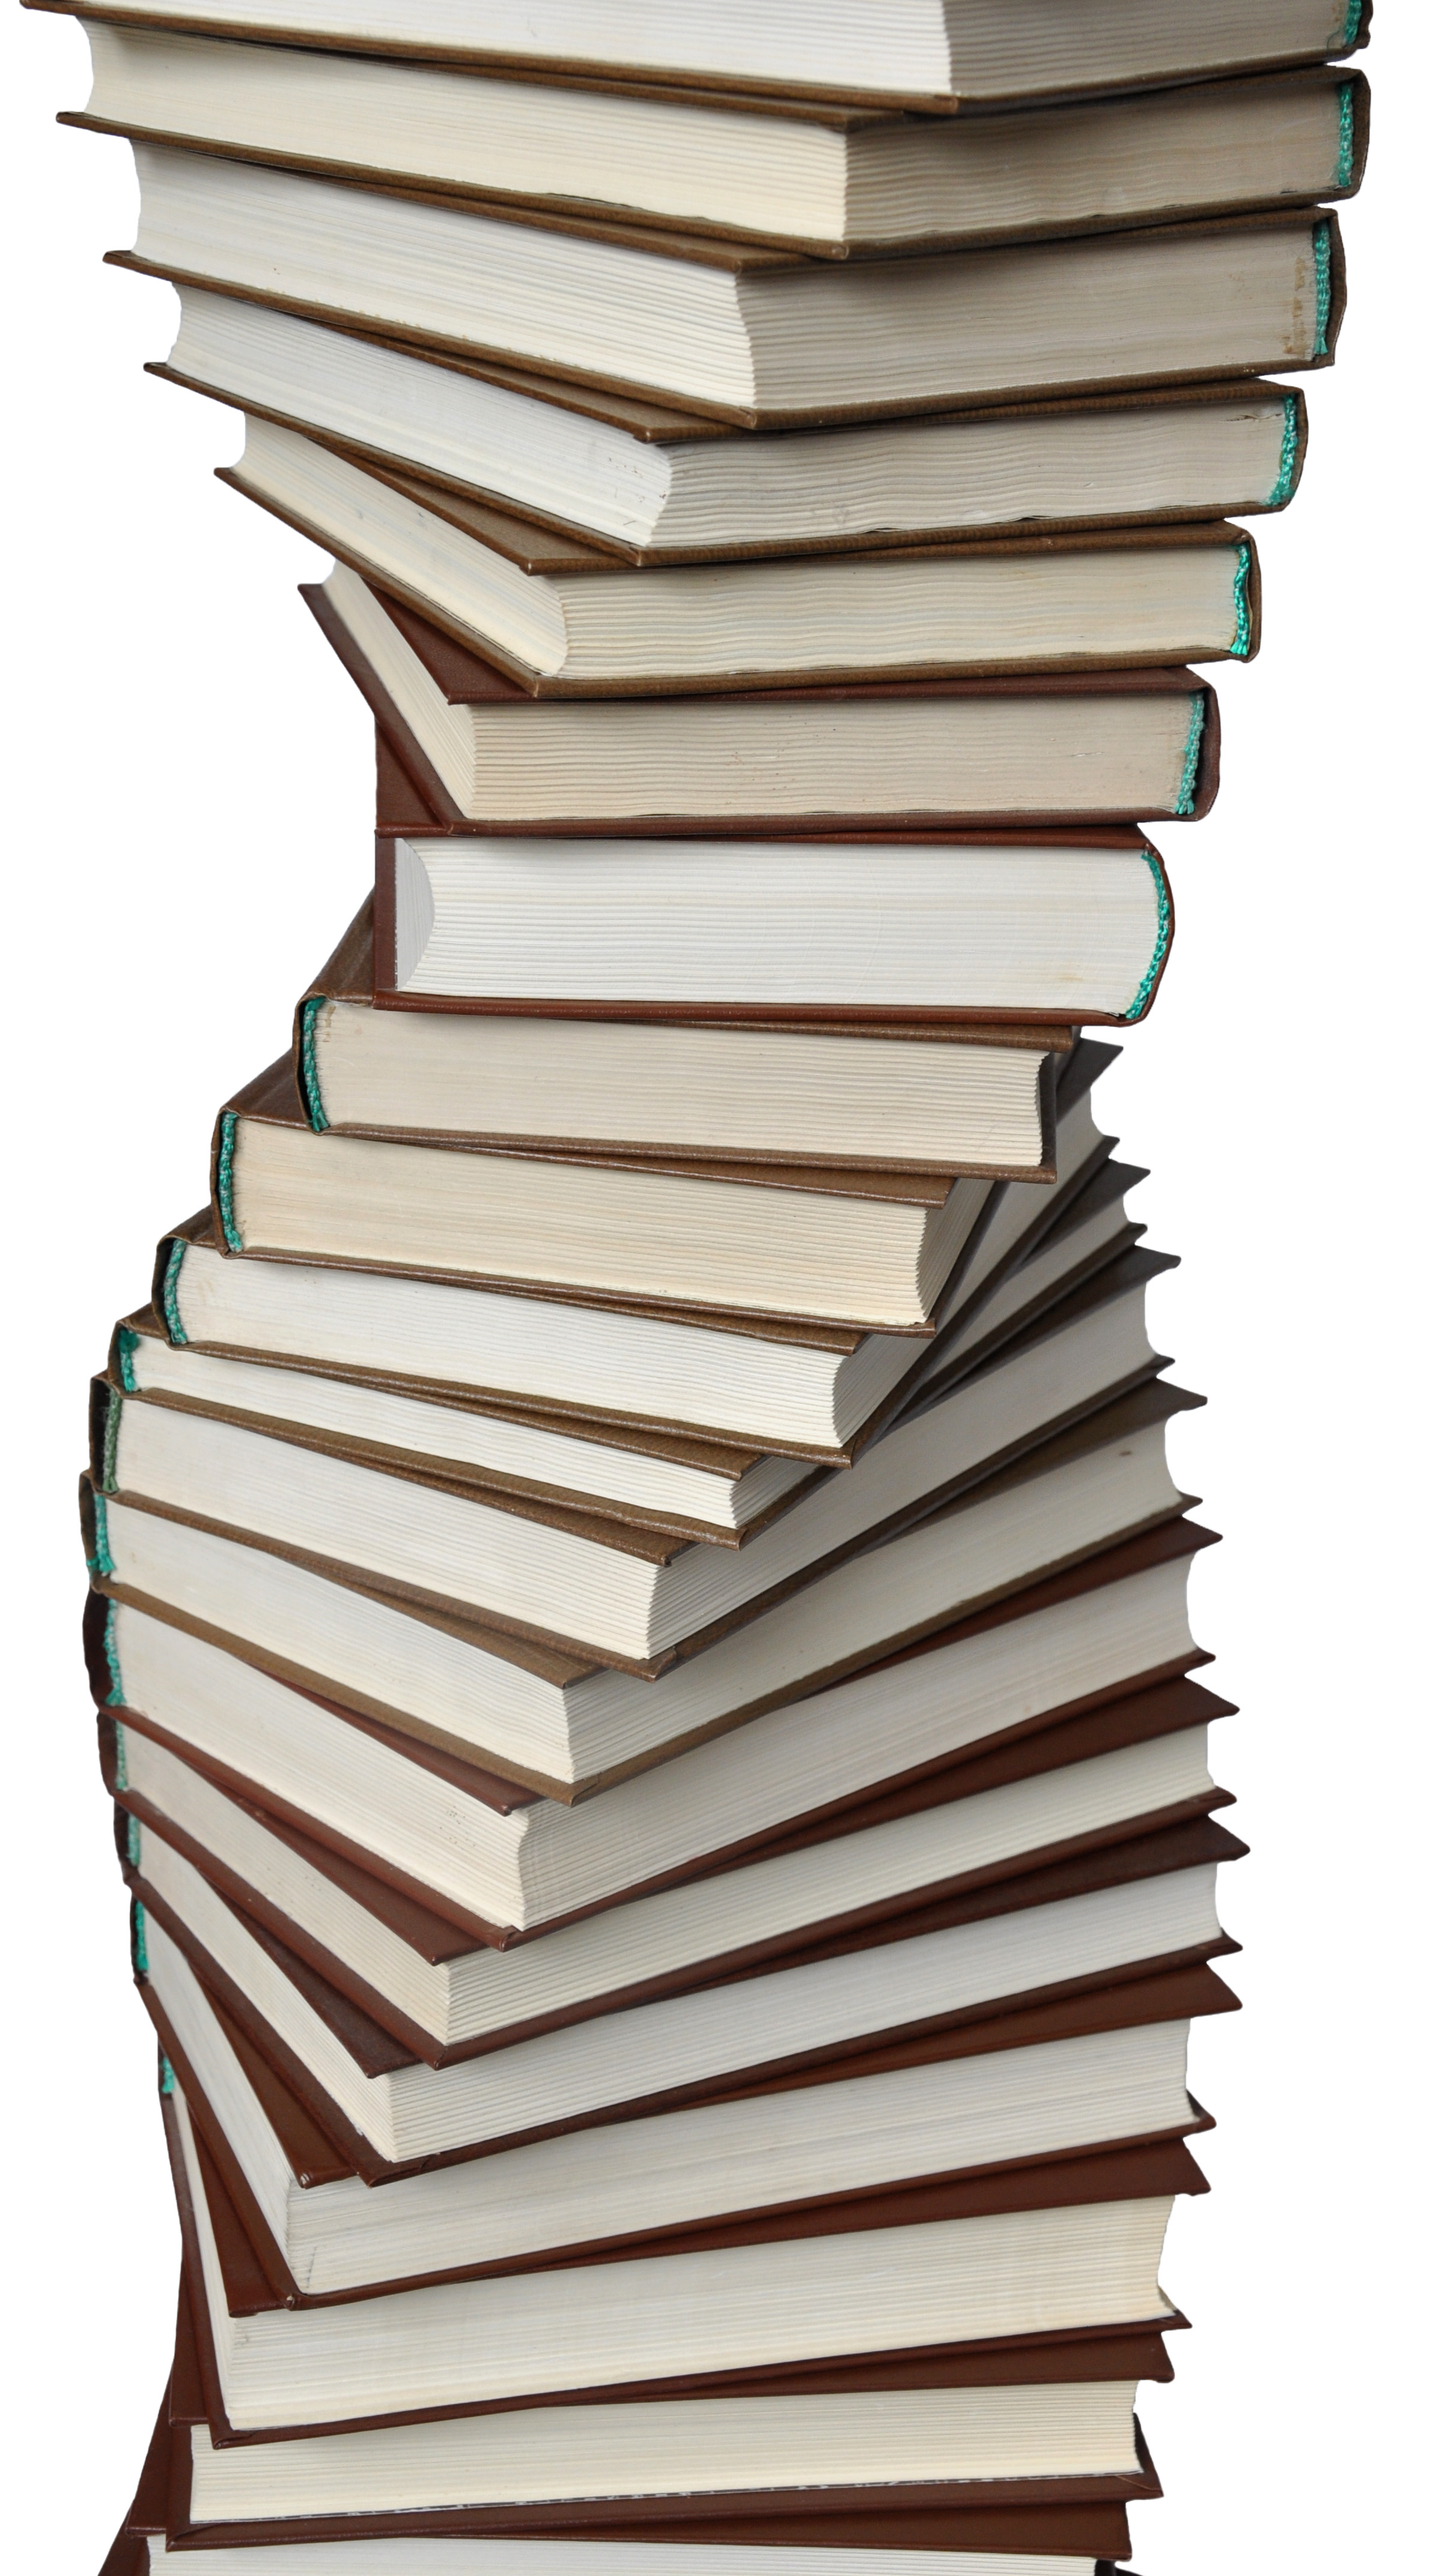 Spiral of books, Archive, Stack, Paper, Pile, HQ Photo